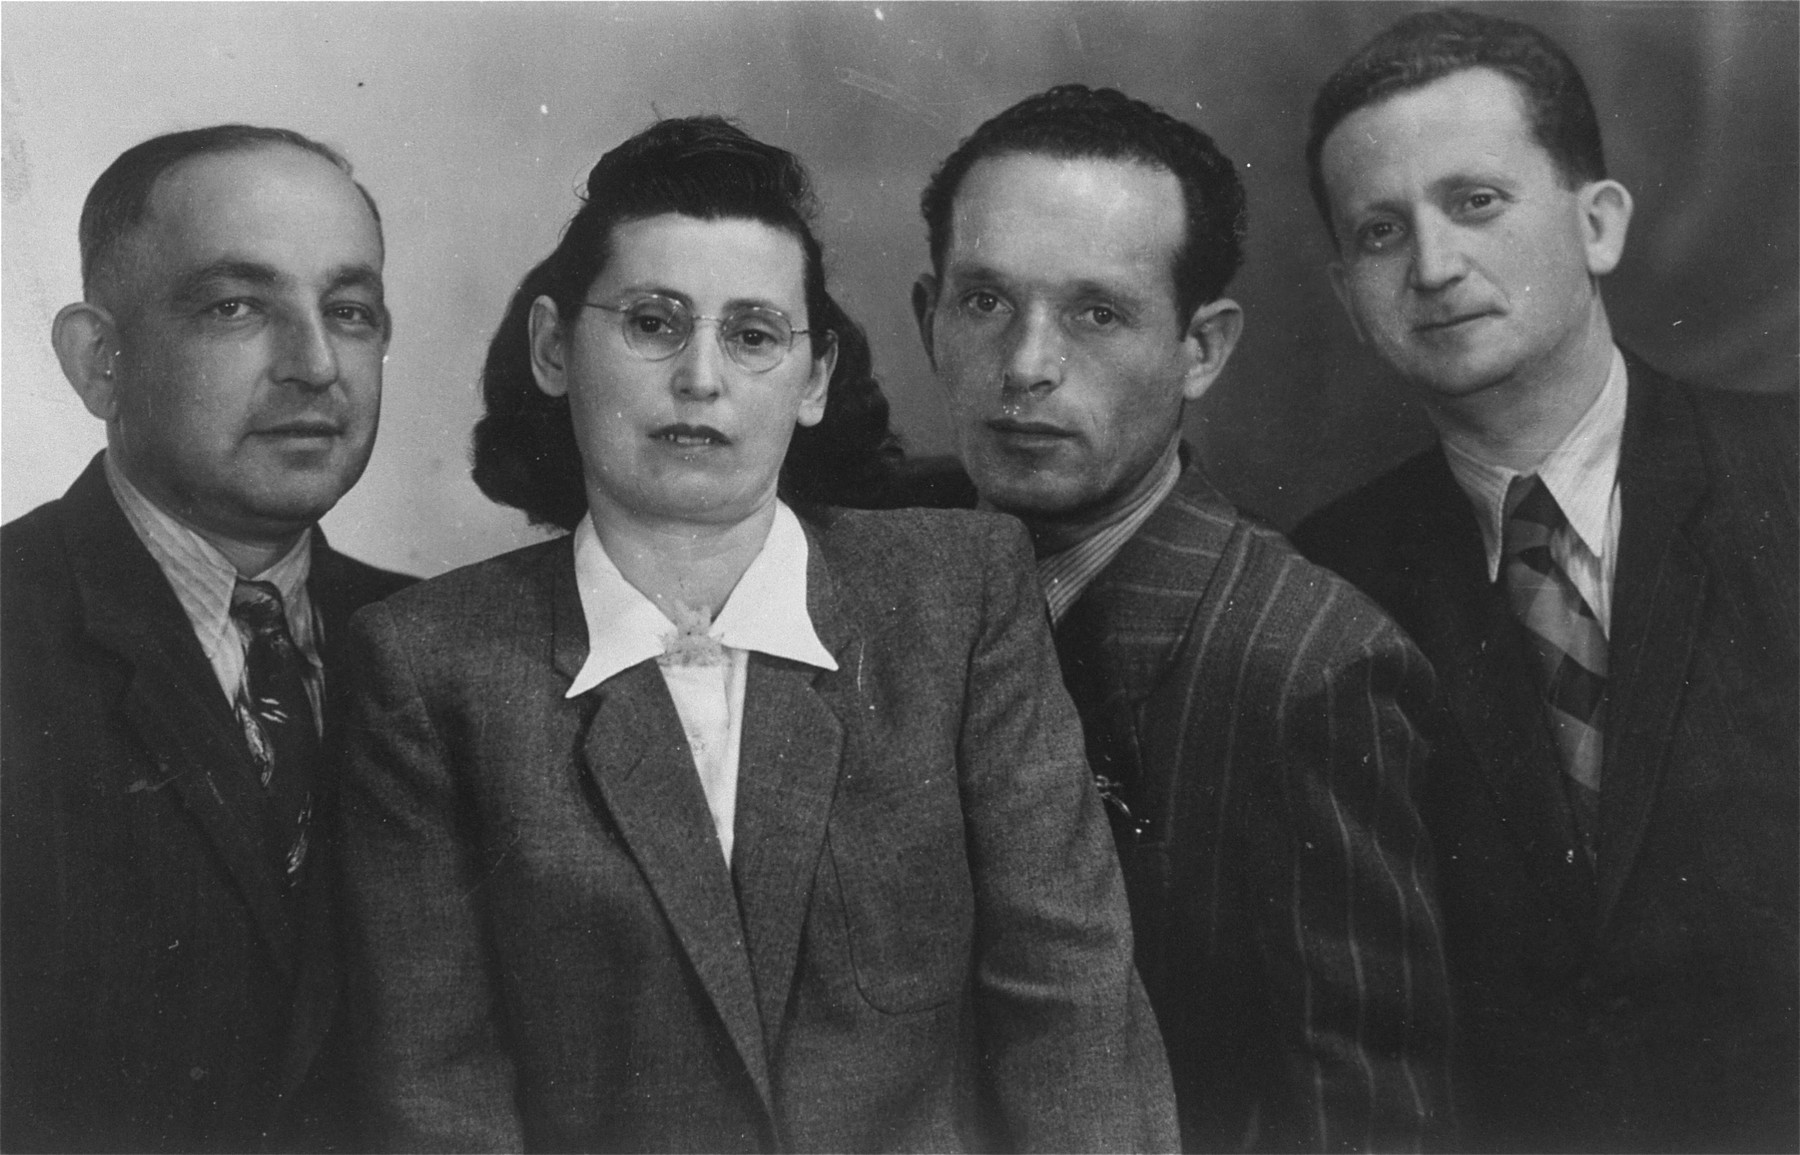 """Group portrait of four survivors, who were living as displaced persons in Germany.    Pictured from left to right are:  Motel Feldman, Pesia Friedman, Moshe Friedman, and Shalom-Yudel.  The Yiddish inscription on the back of the photo reads, """"As a momento to our dear friend Mendel Rozenblit, [from] Motel Feldman, Pesia Friedman, Moshe Friedman.  For our only surviving Lukower friend from Auschwitz and Dachau, [from] Shalom-Yudel."""""""